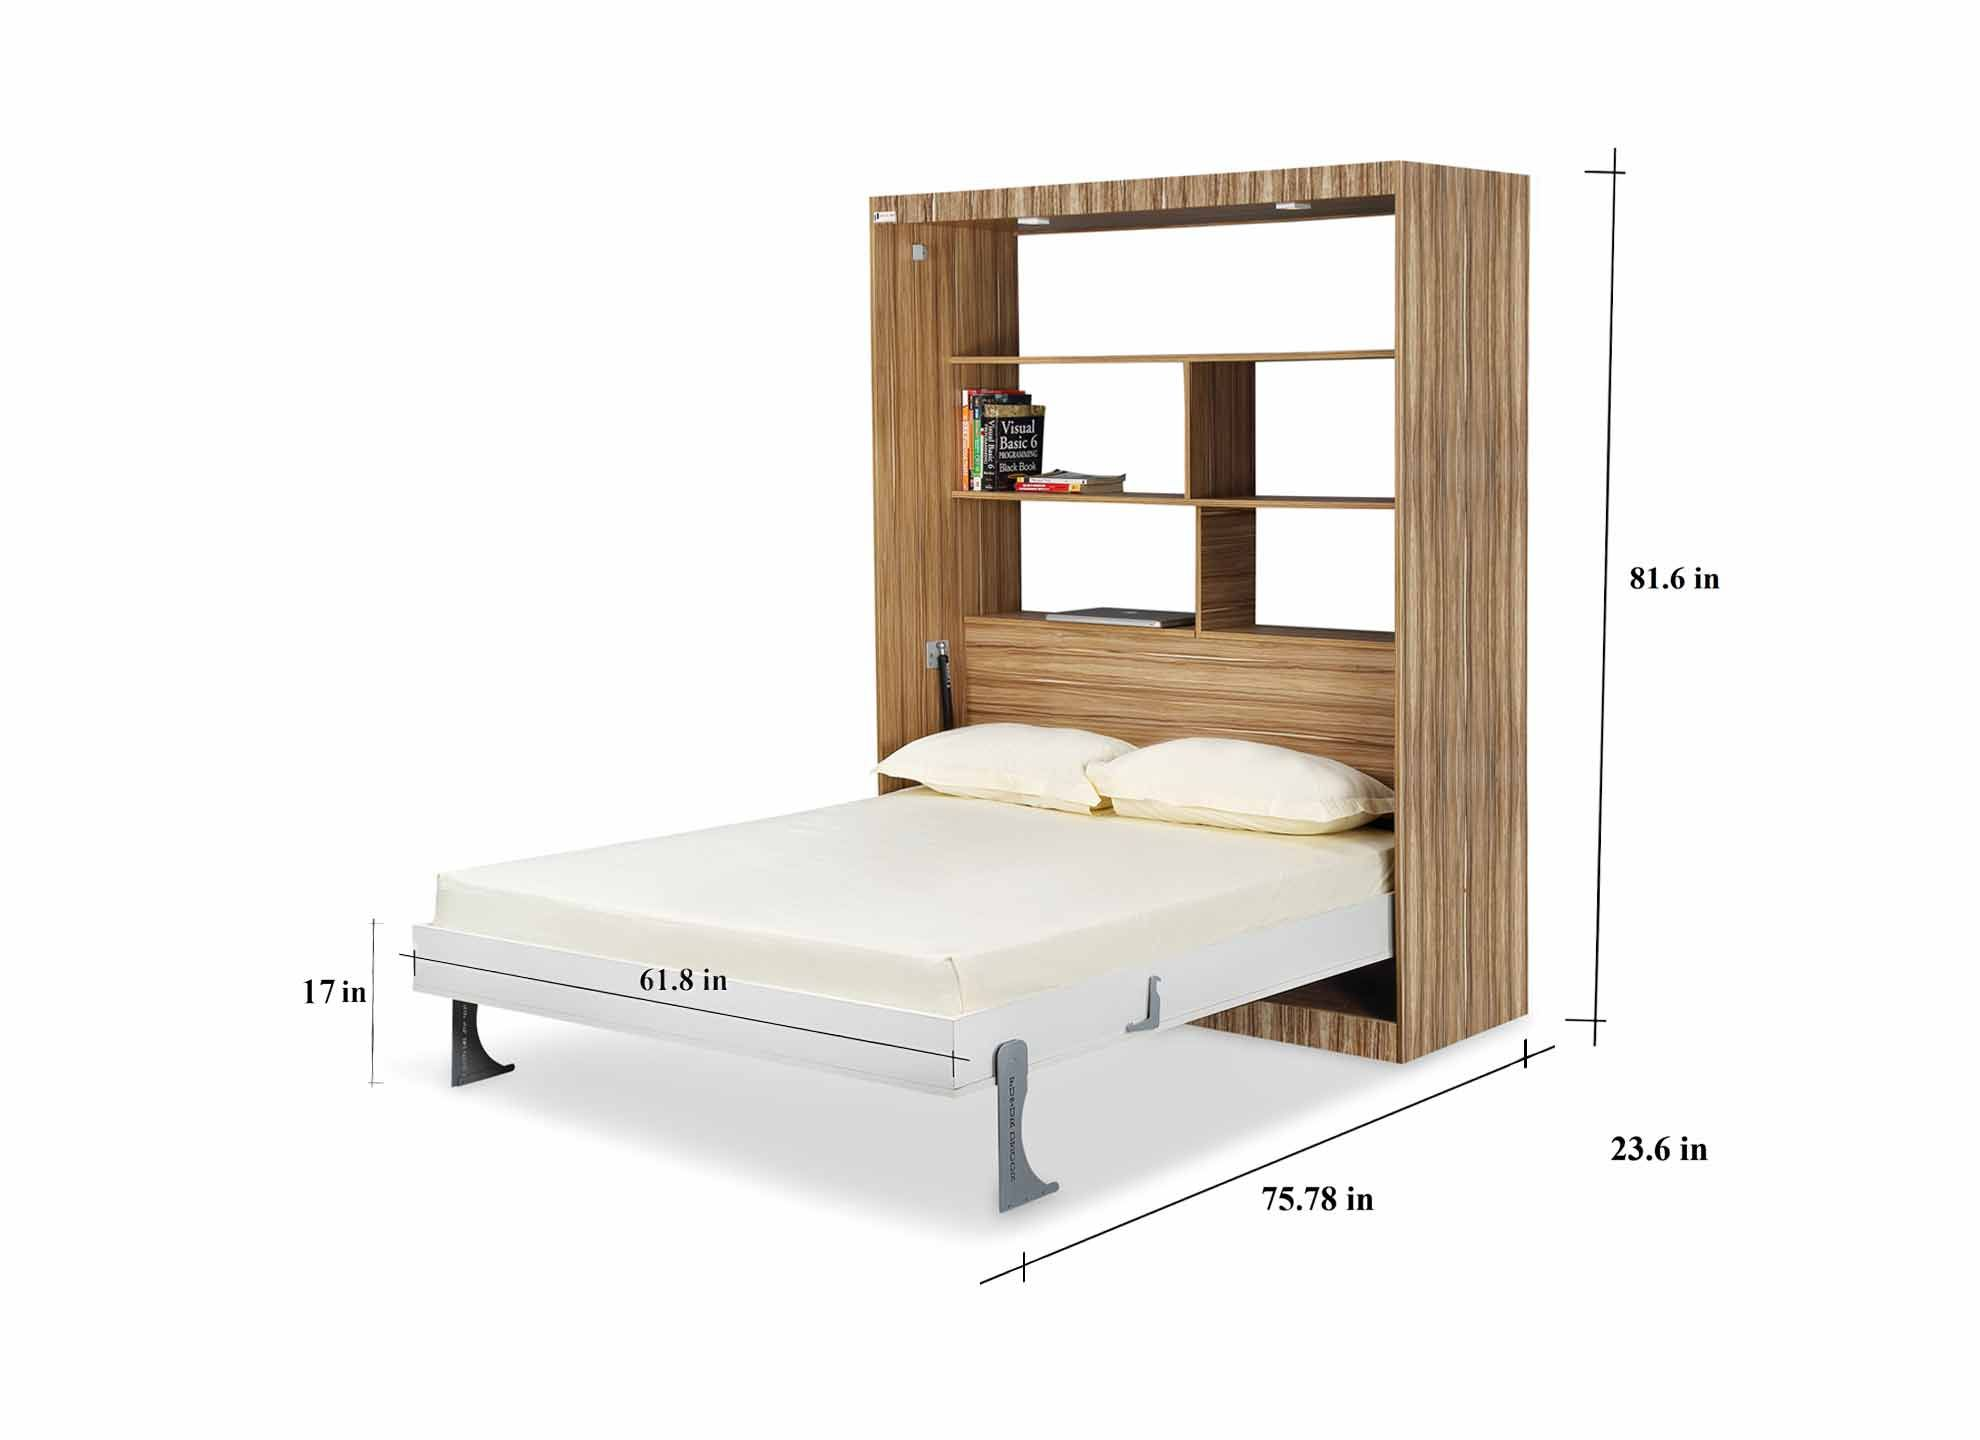 Ishelf Bookshelf Invisitable Max Table Invisible Bed Space Saving Furniture Wall Bed Murphy Bed Luxury Bedding Master Bedroom Luxury Bedding Best Bedding Sets